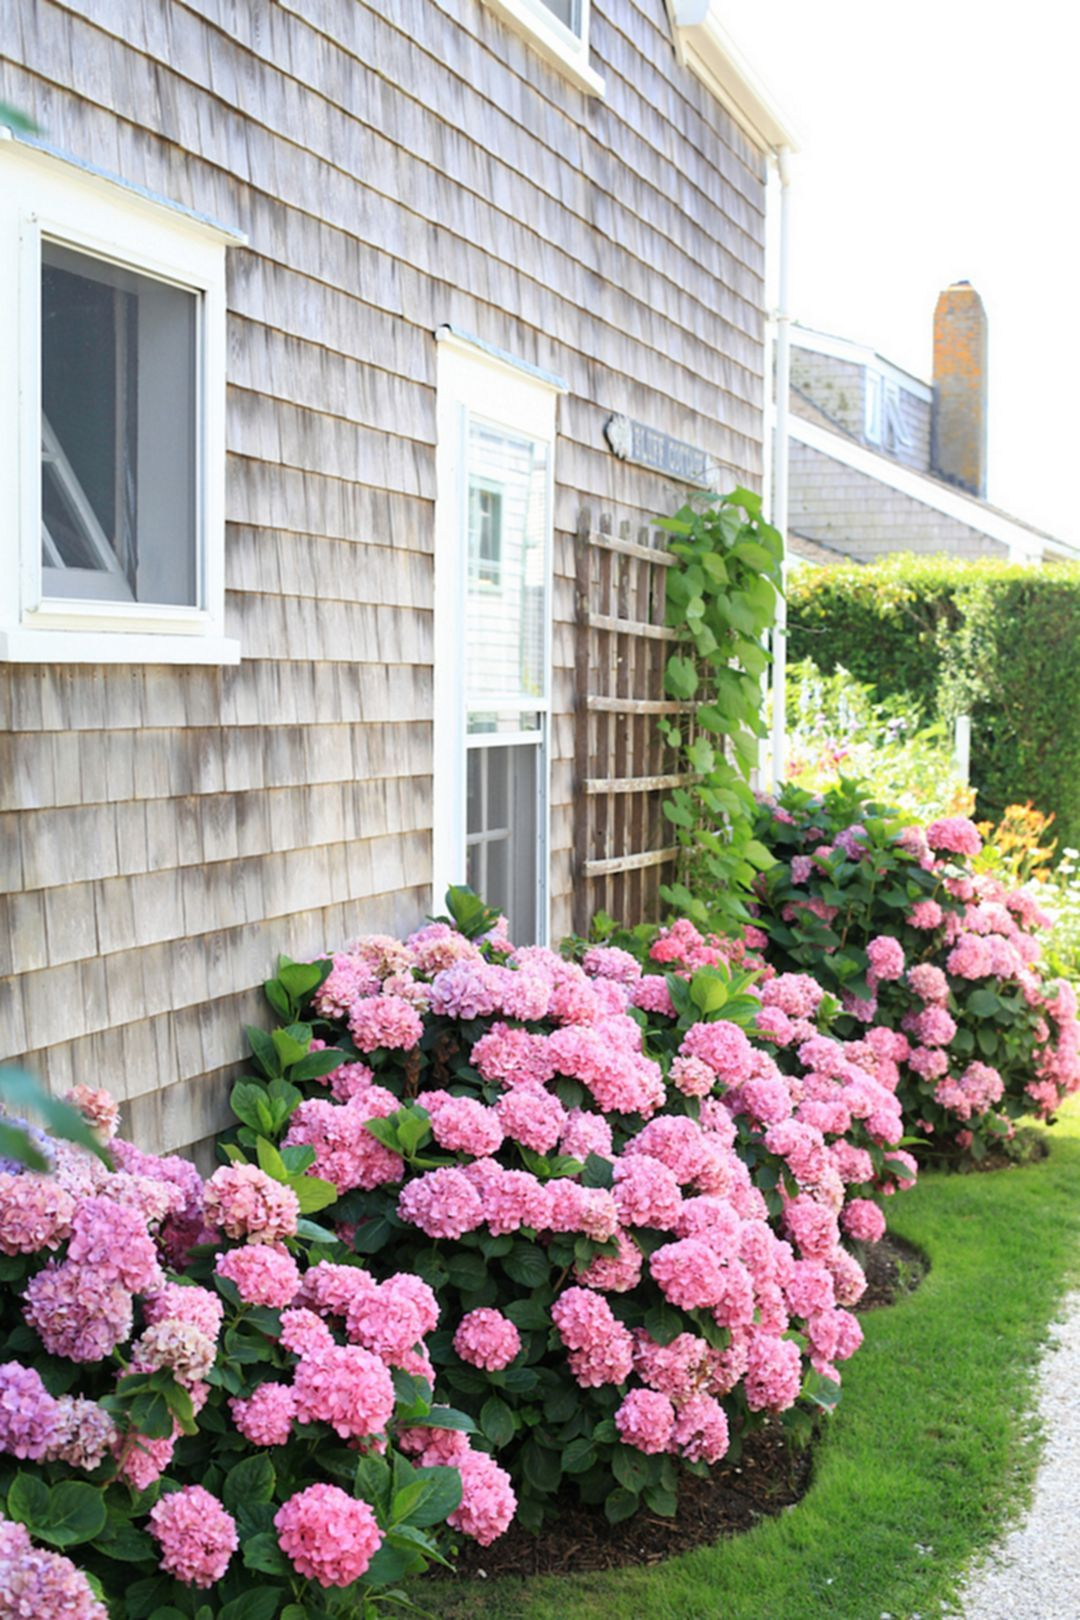 Astounding 35 incredible flower beds ideas to make your